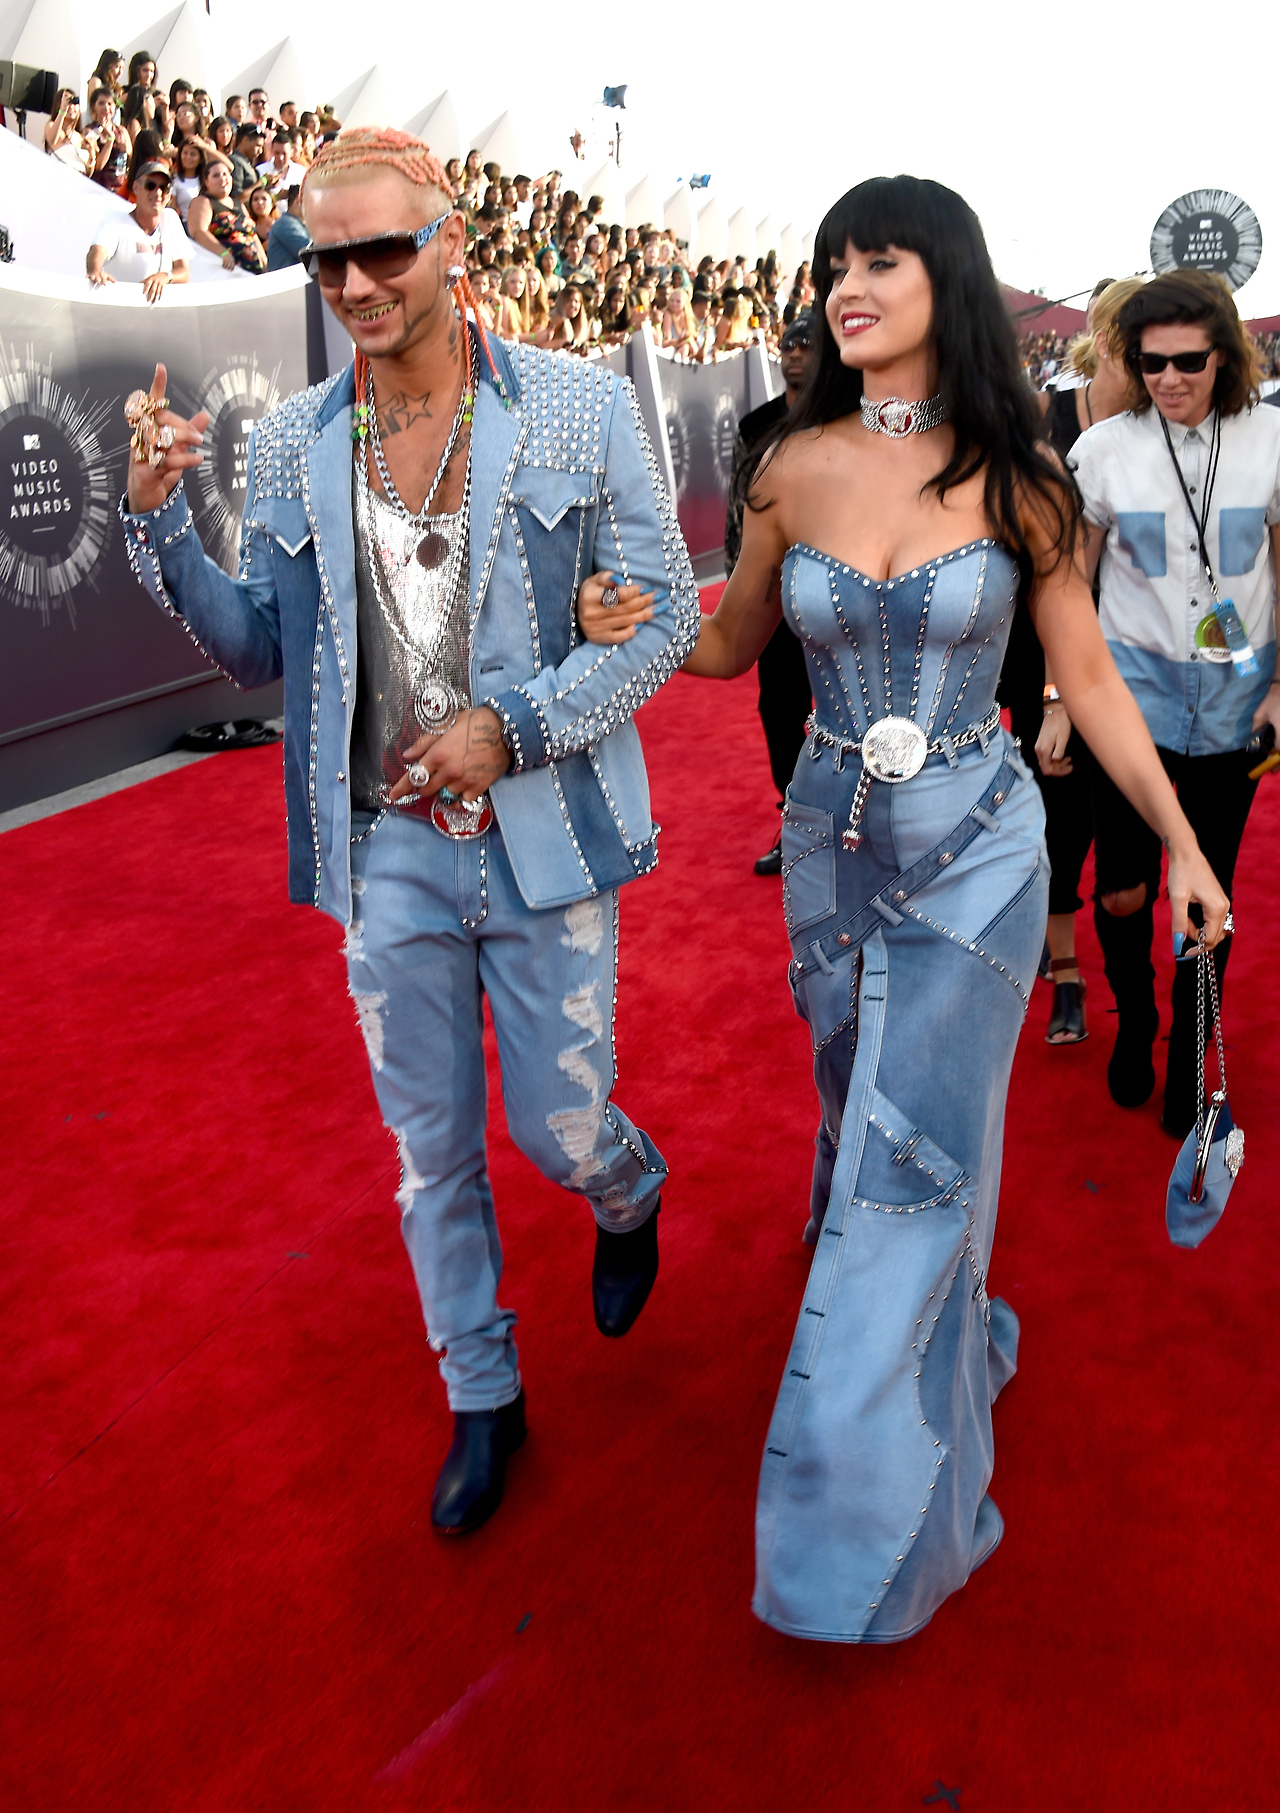 RIFF RAFF AND KATY PERRY, 2014 VIDEO MUSIC AWARDS